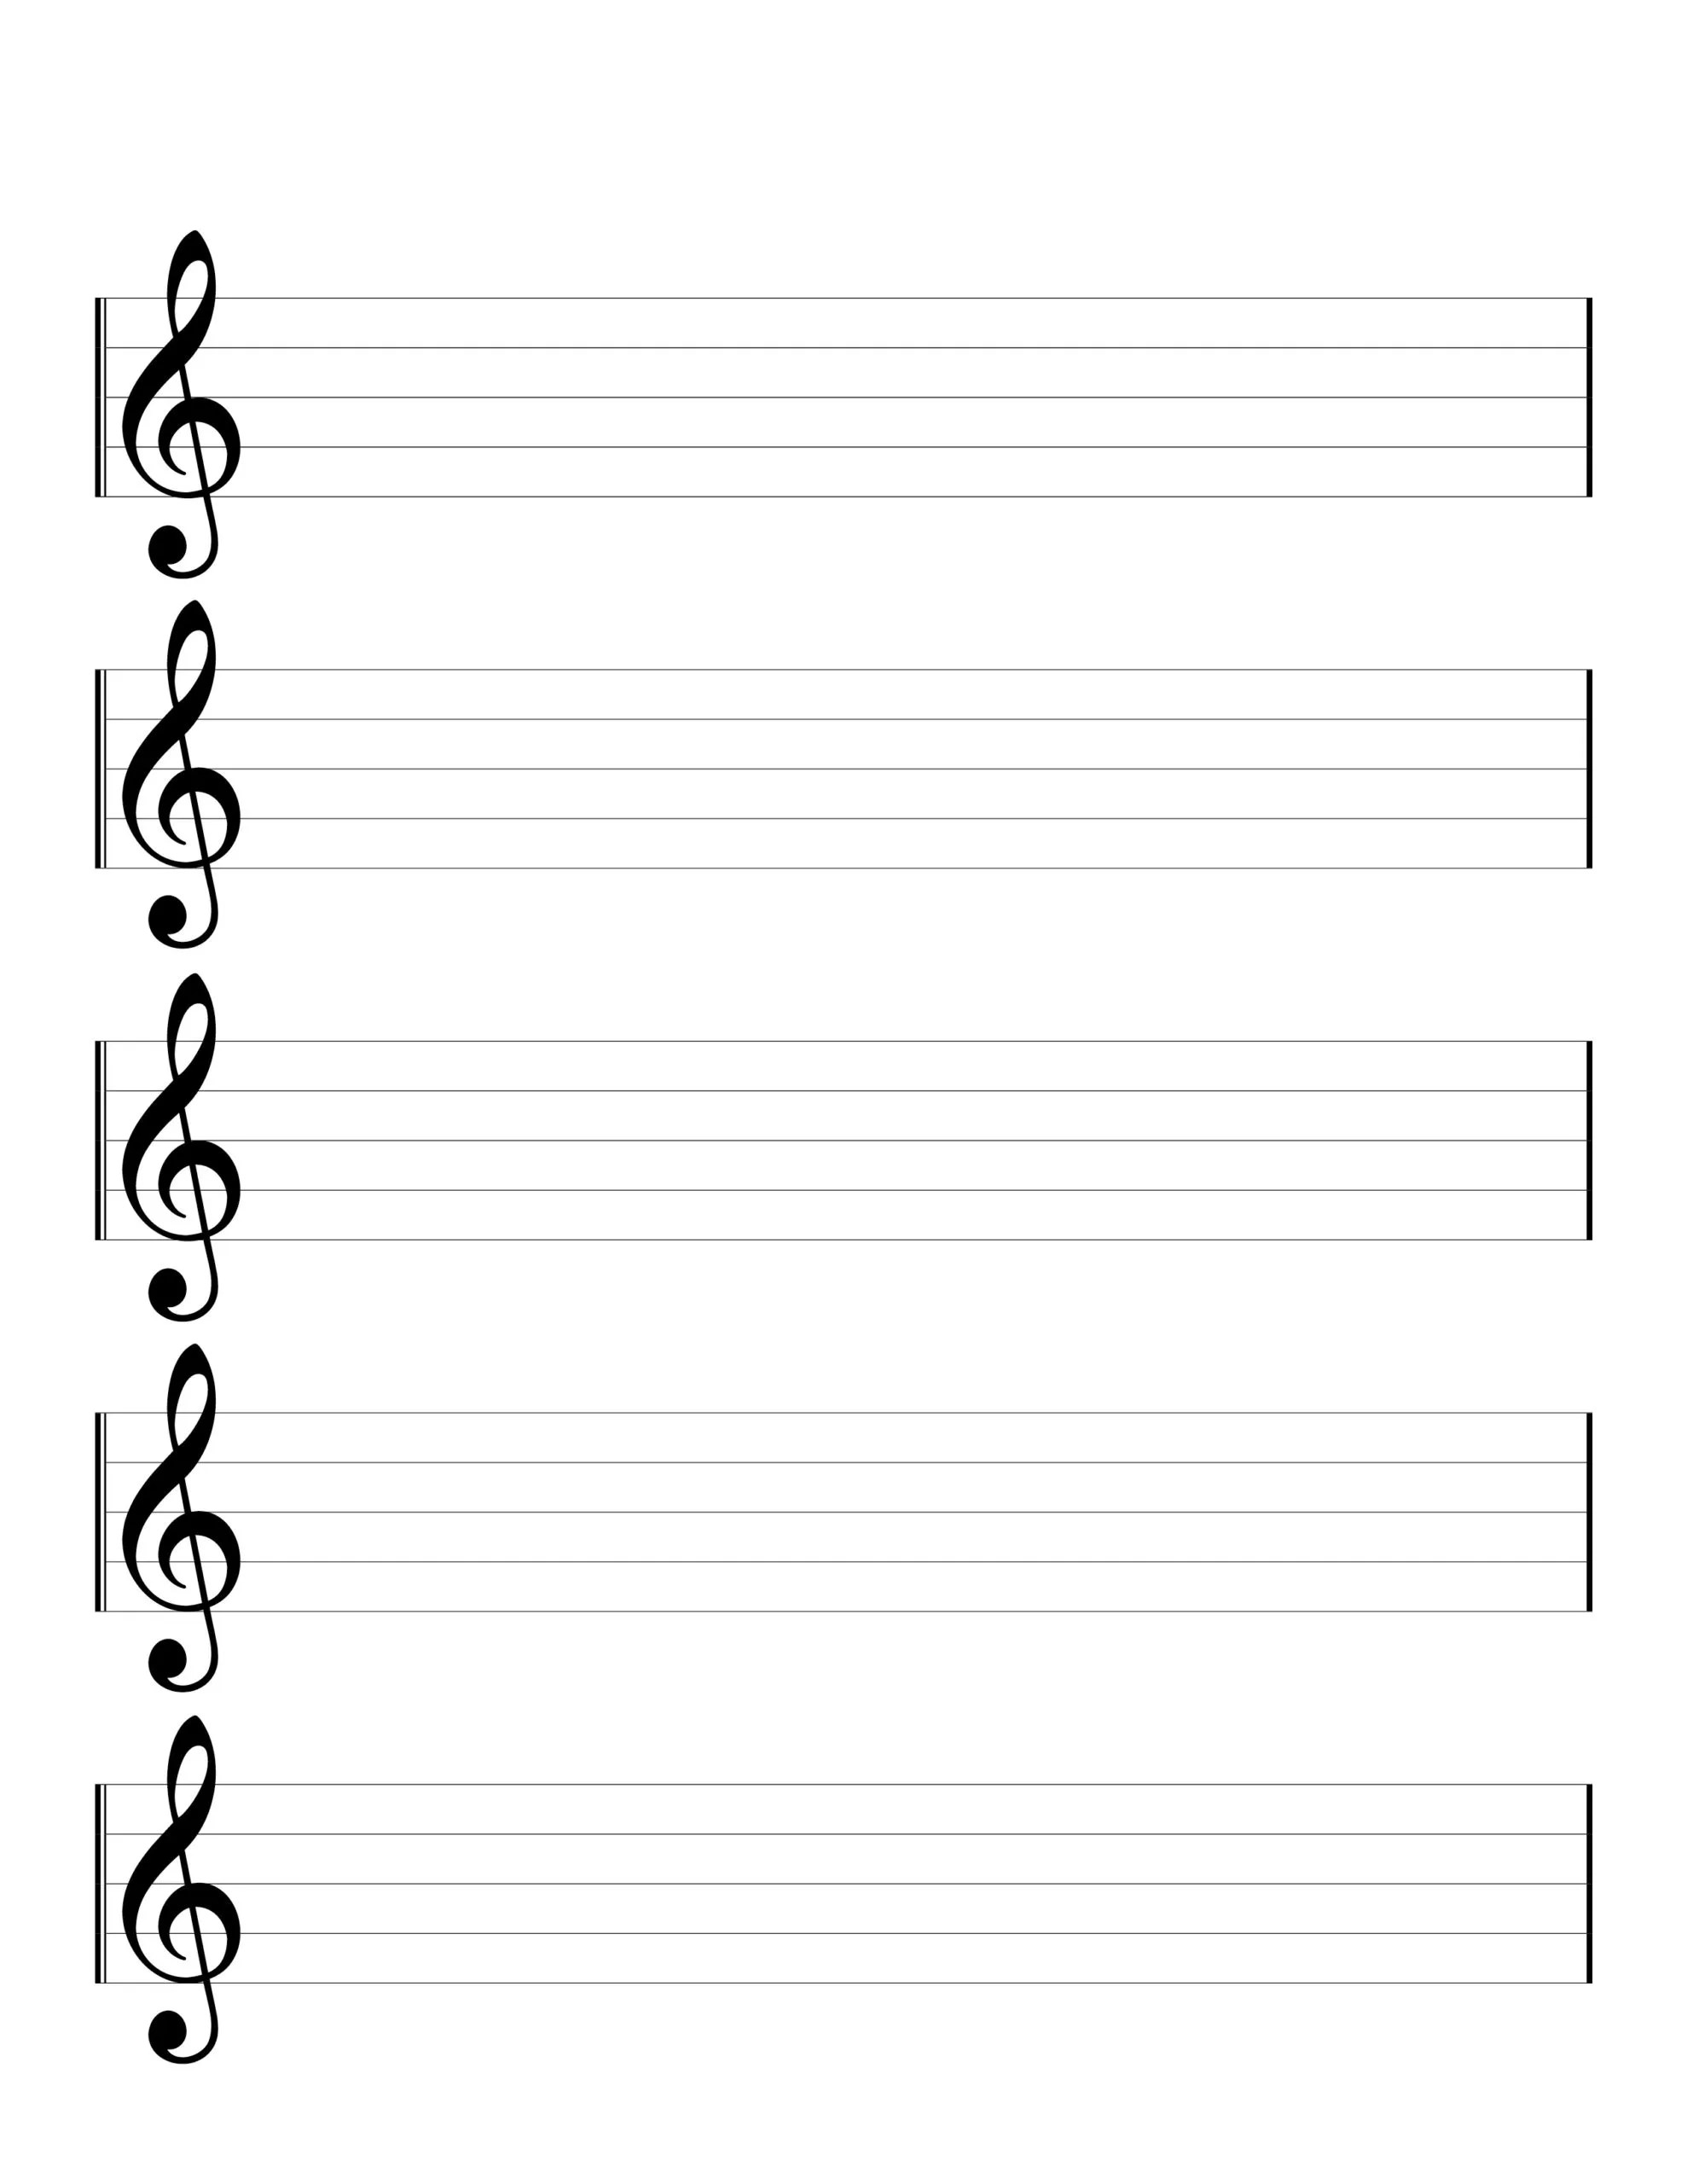 printable  blank music staff paper so you don u0026 39 t have to